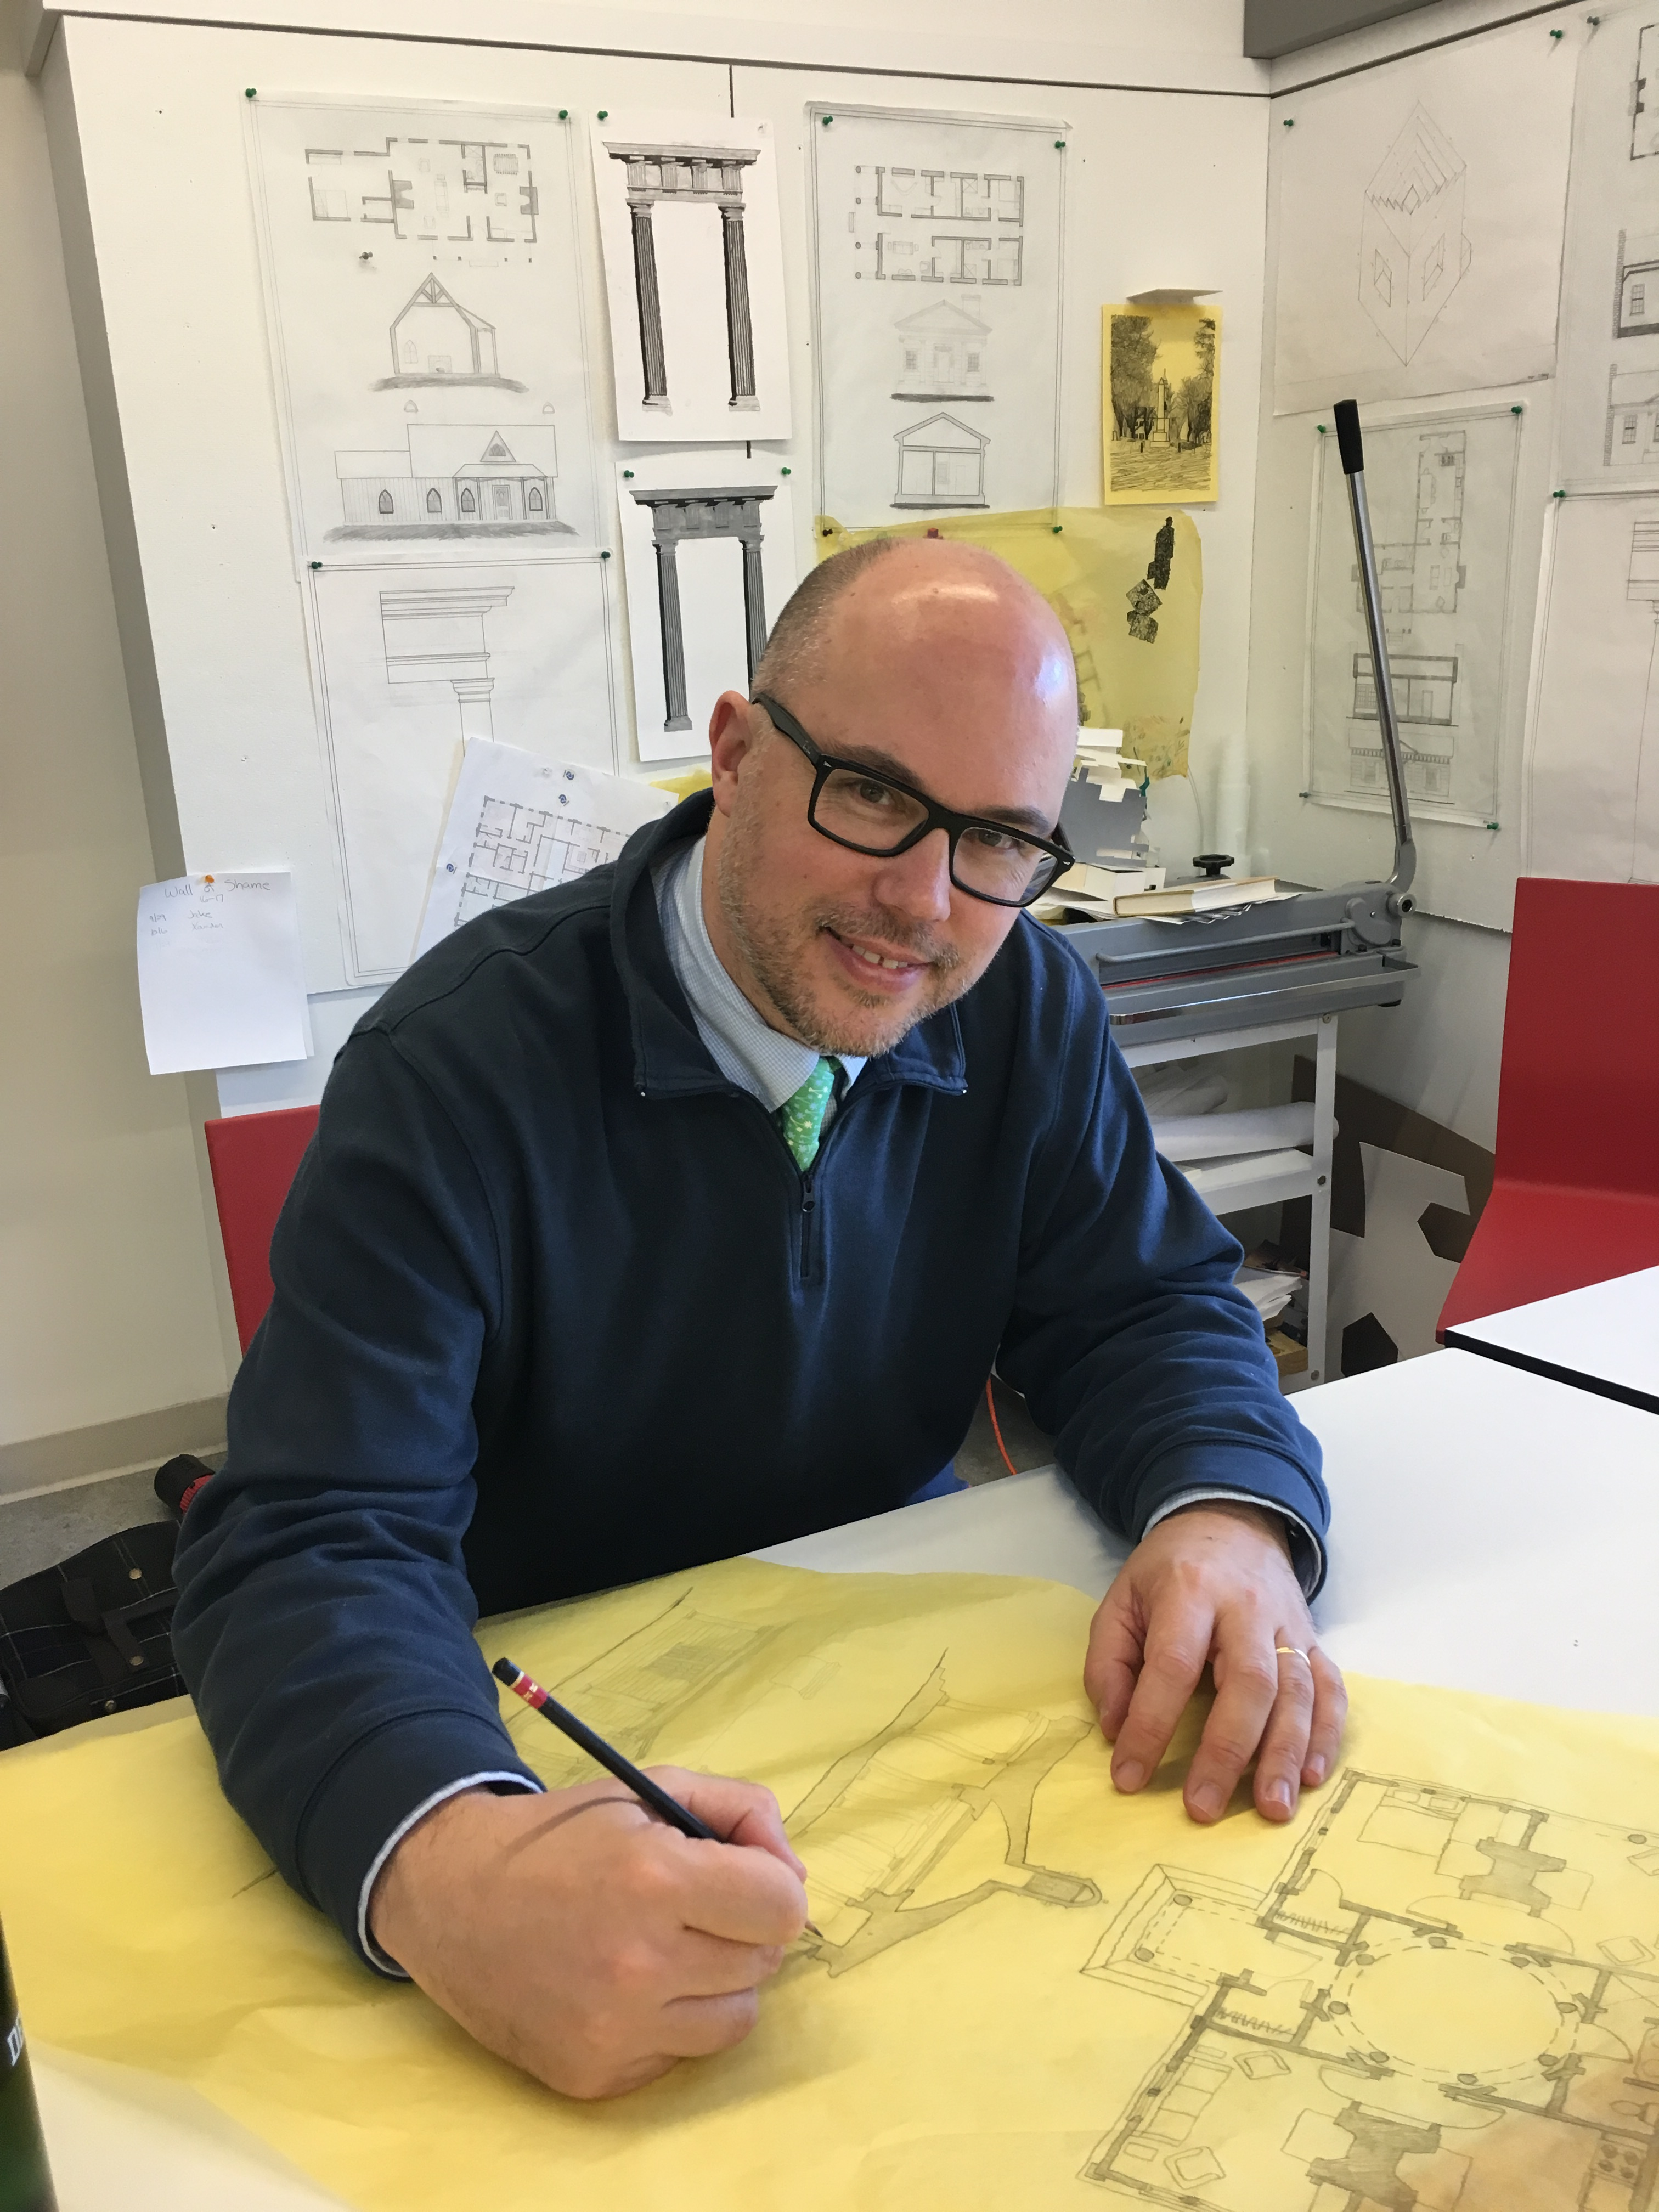 Mr. Payne at the Architecture drawing board in his classroom